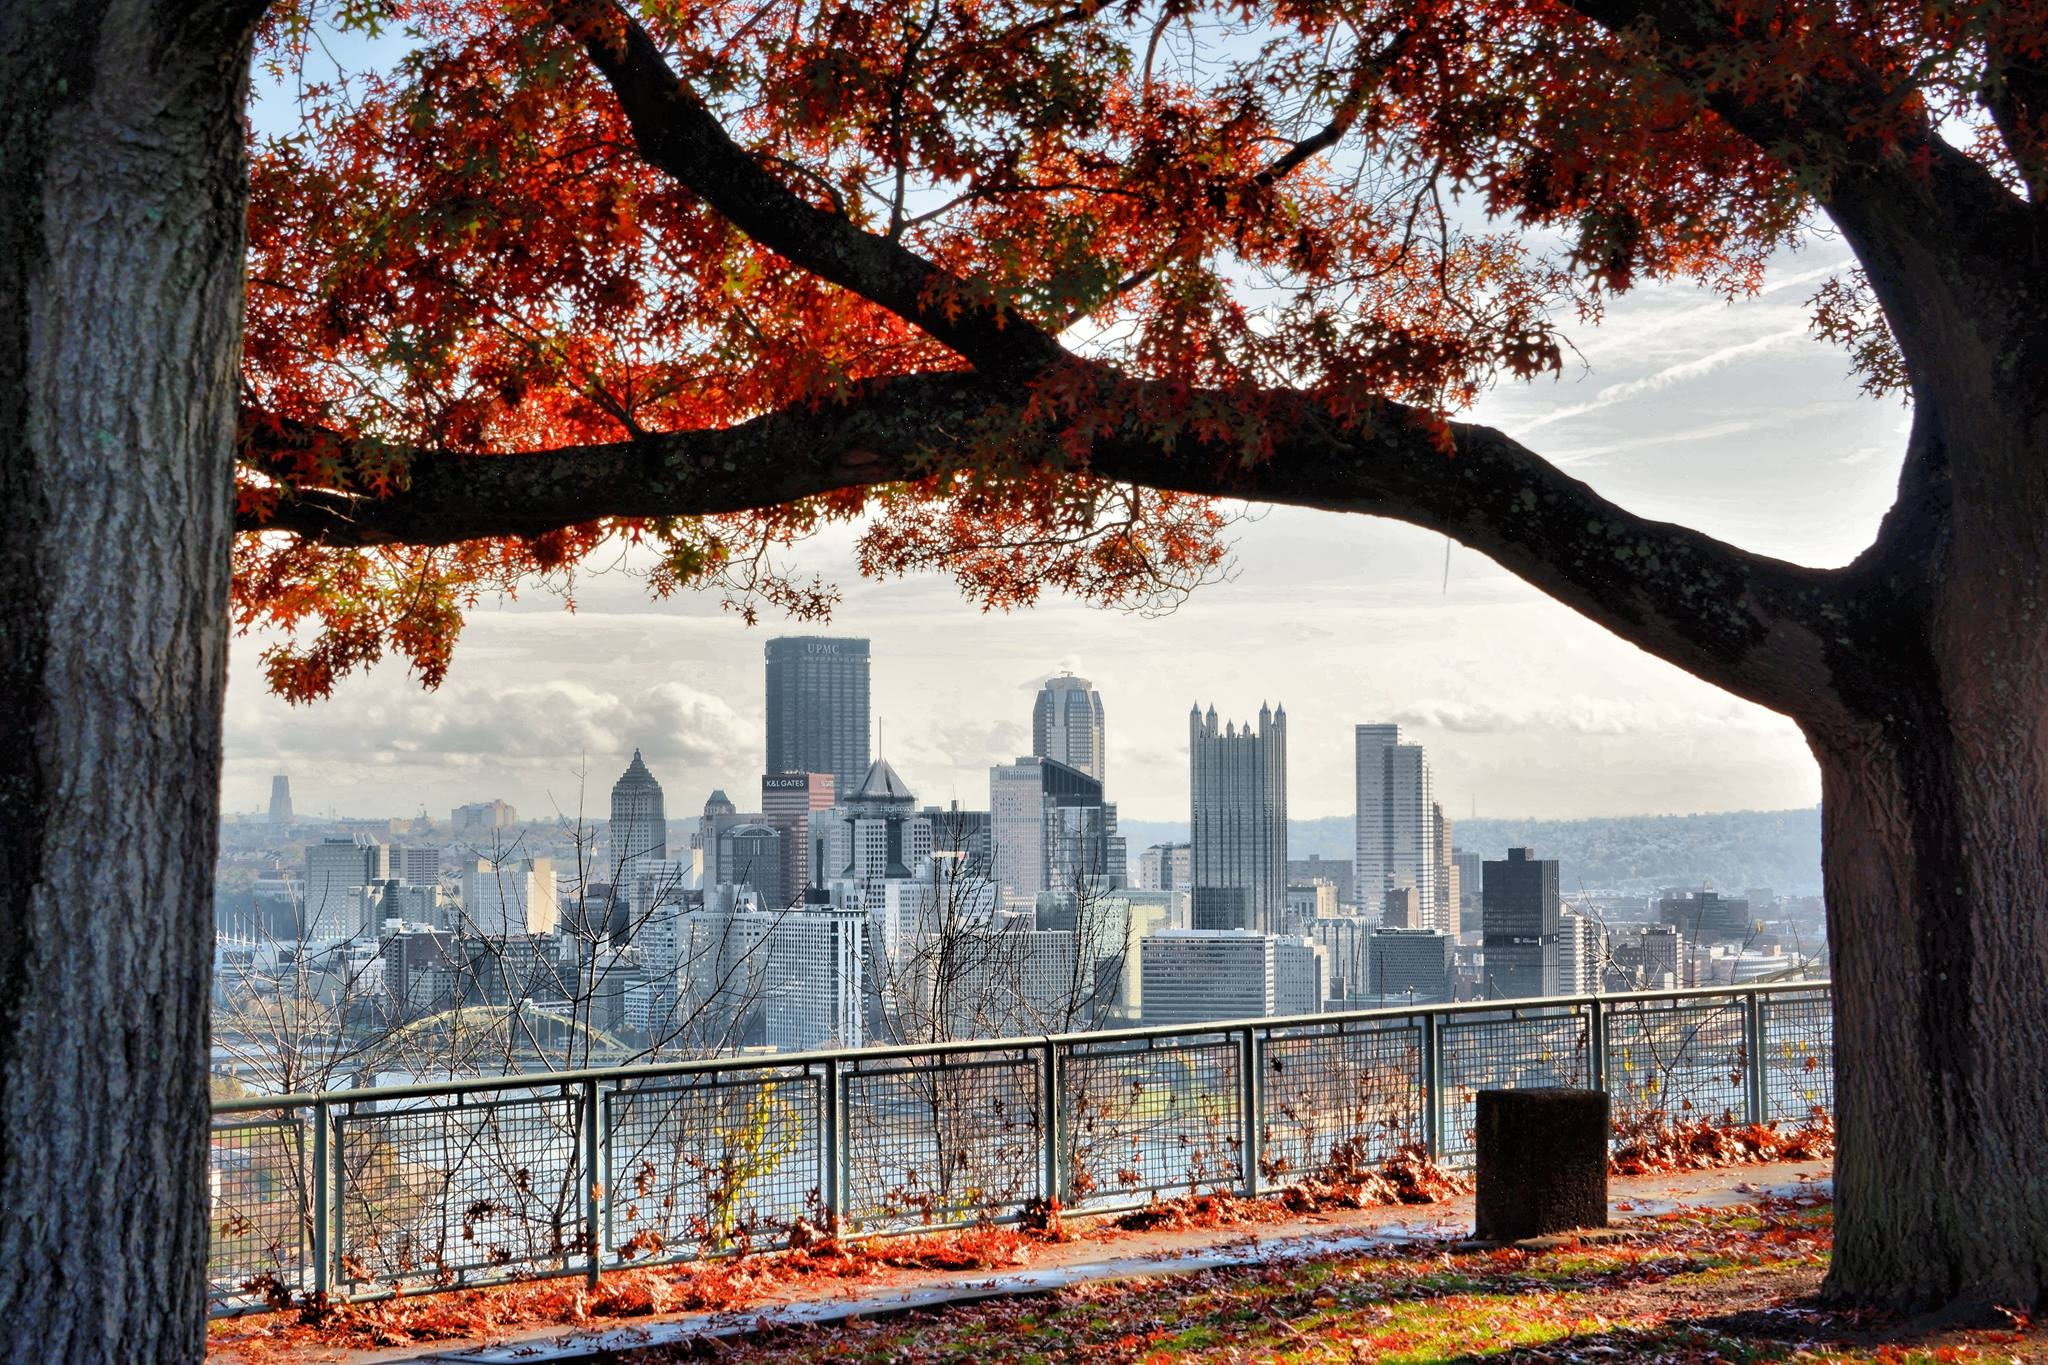 Pittsburgh skyline showing opportunities to invest